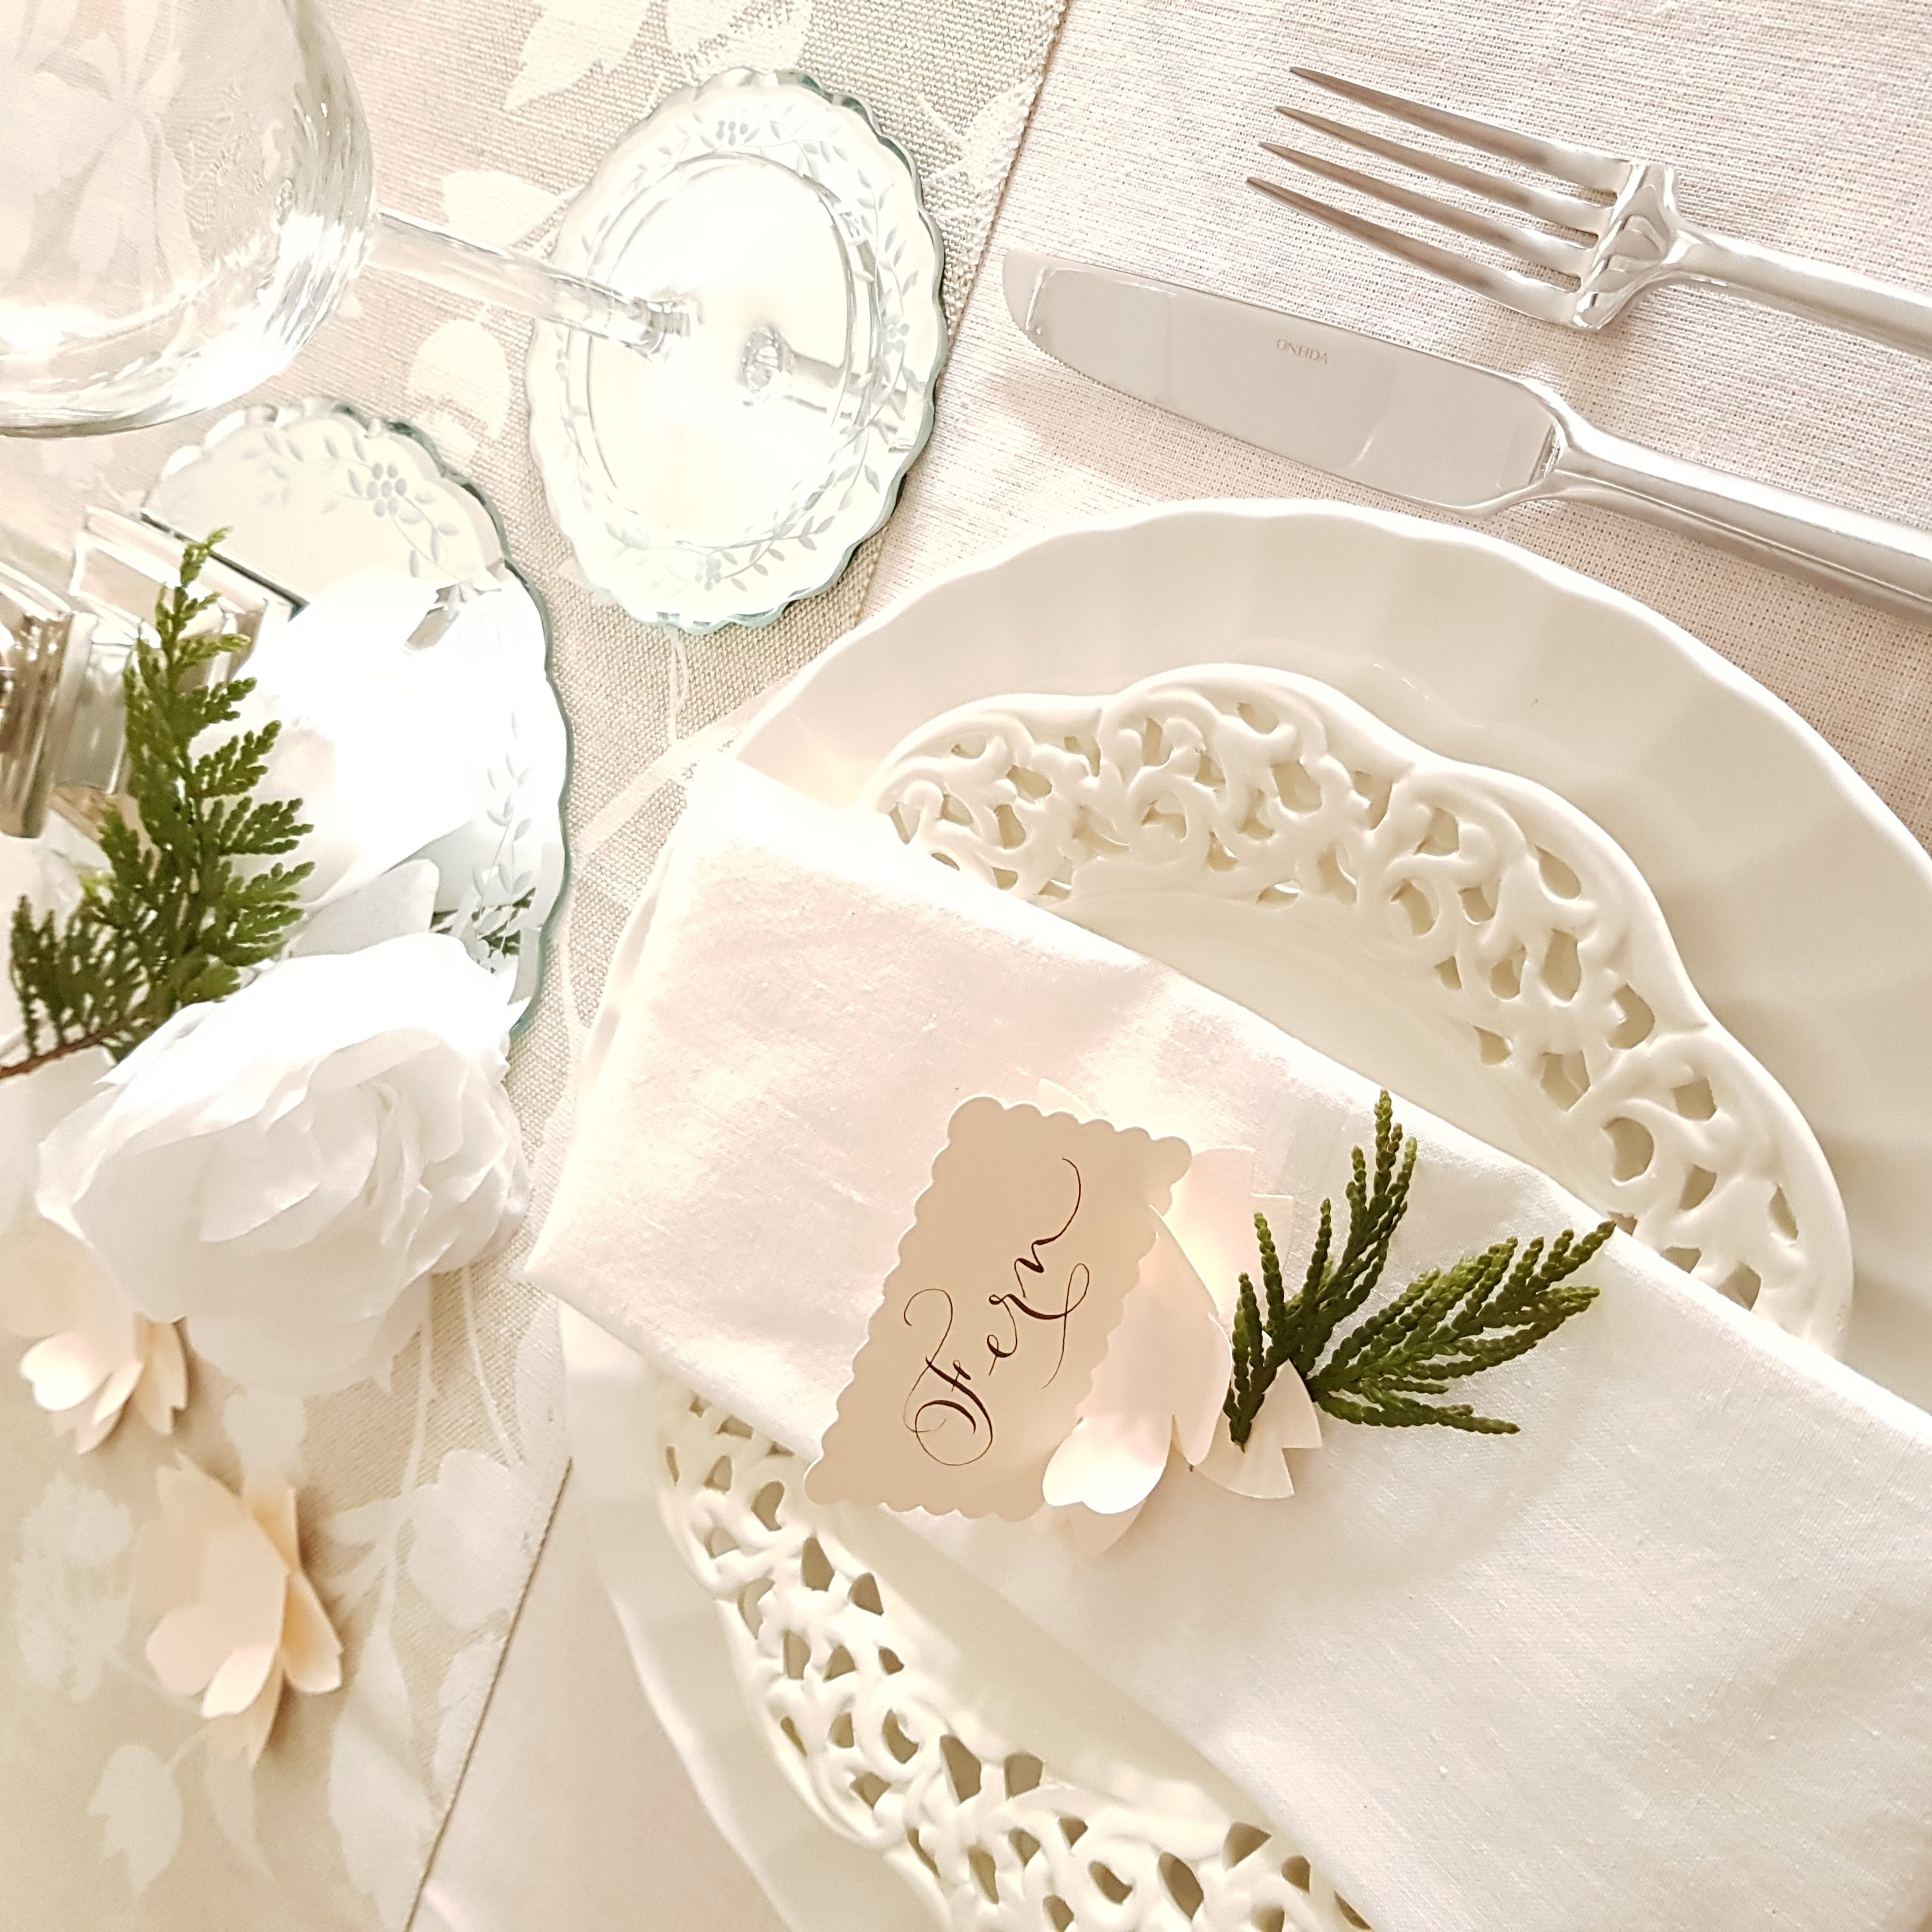 Sitting place cards